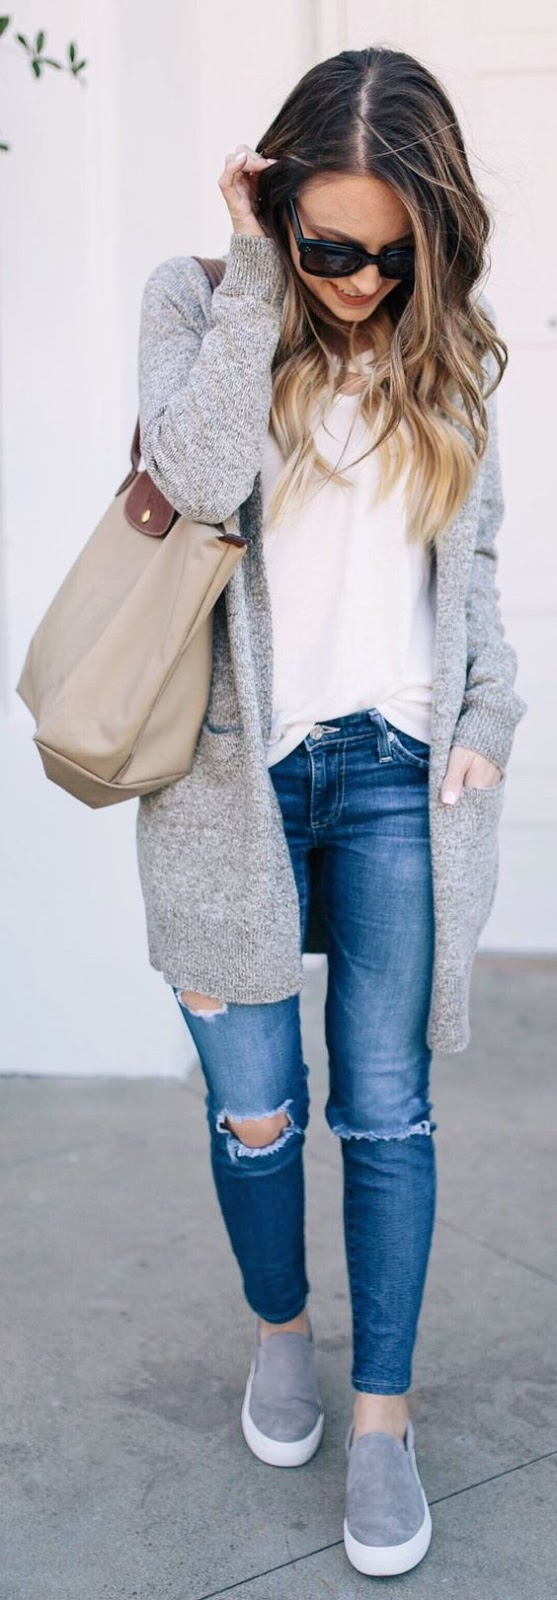 fall outfit of the day | grey cardigan + top + ripped jeans + bag